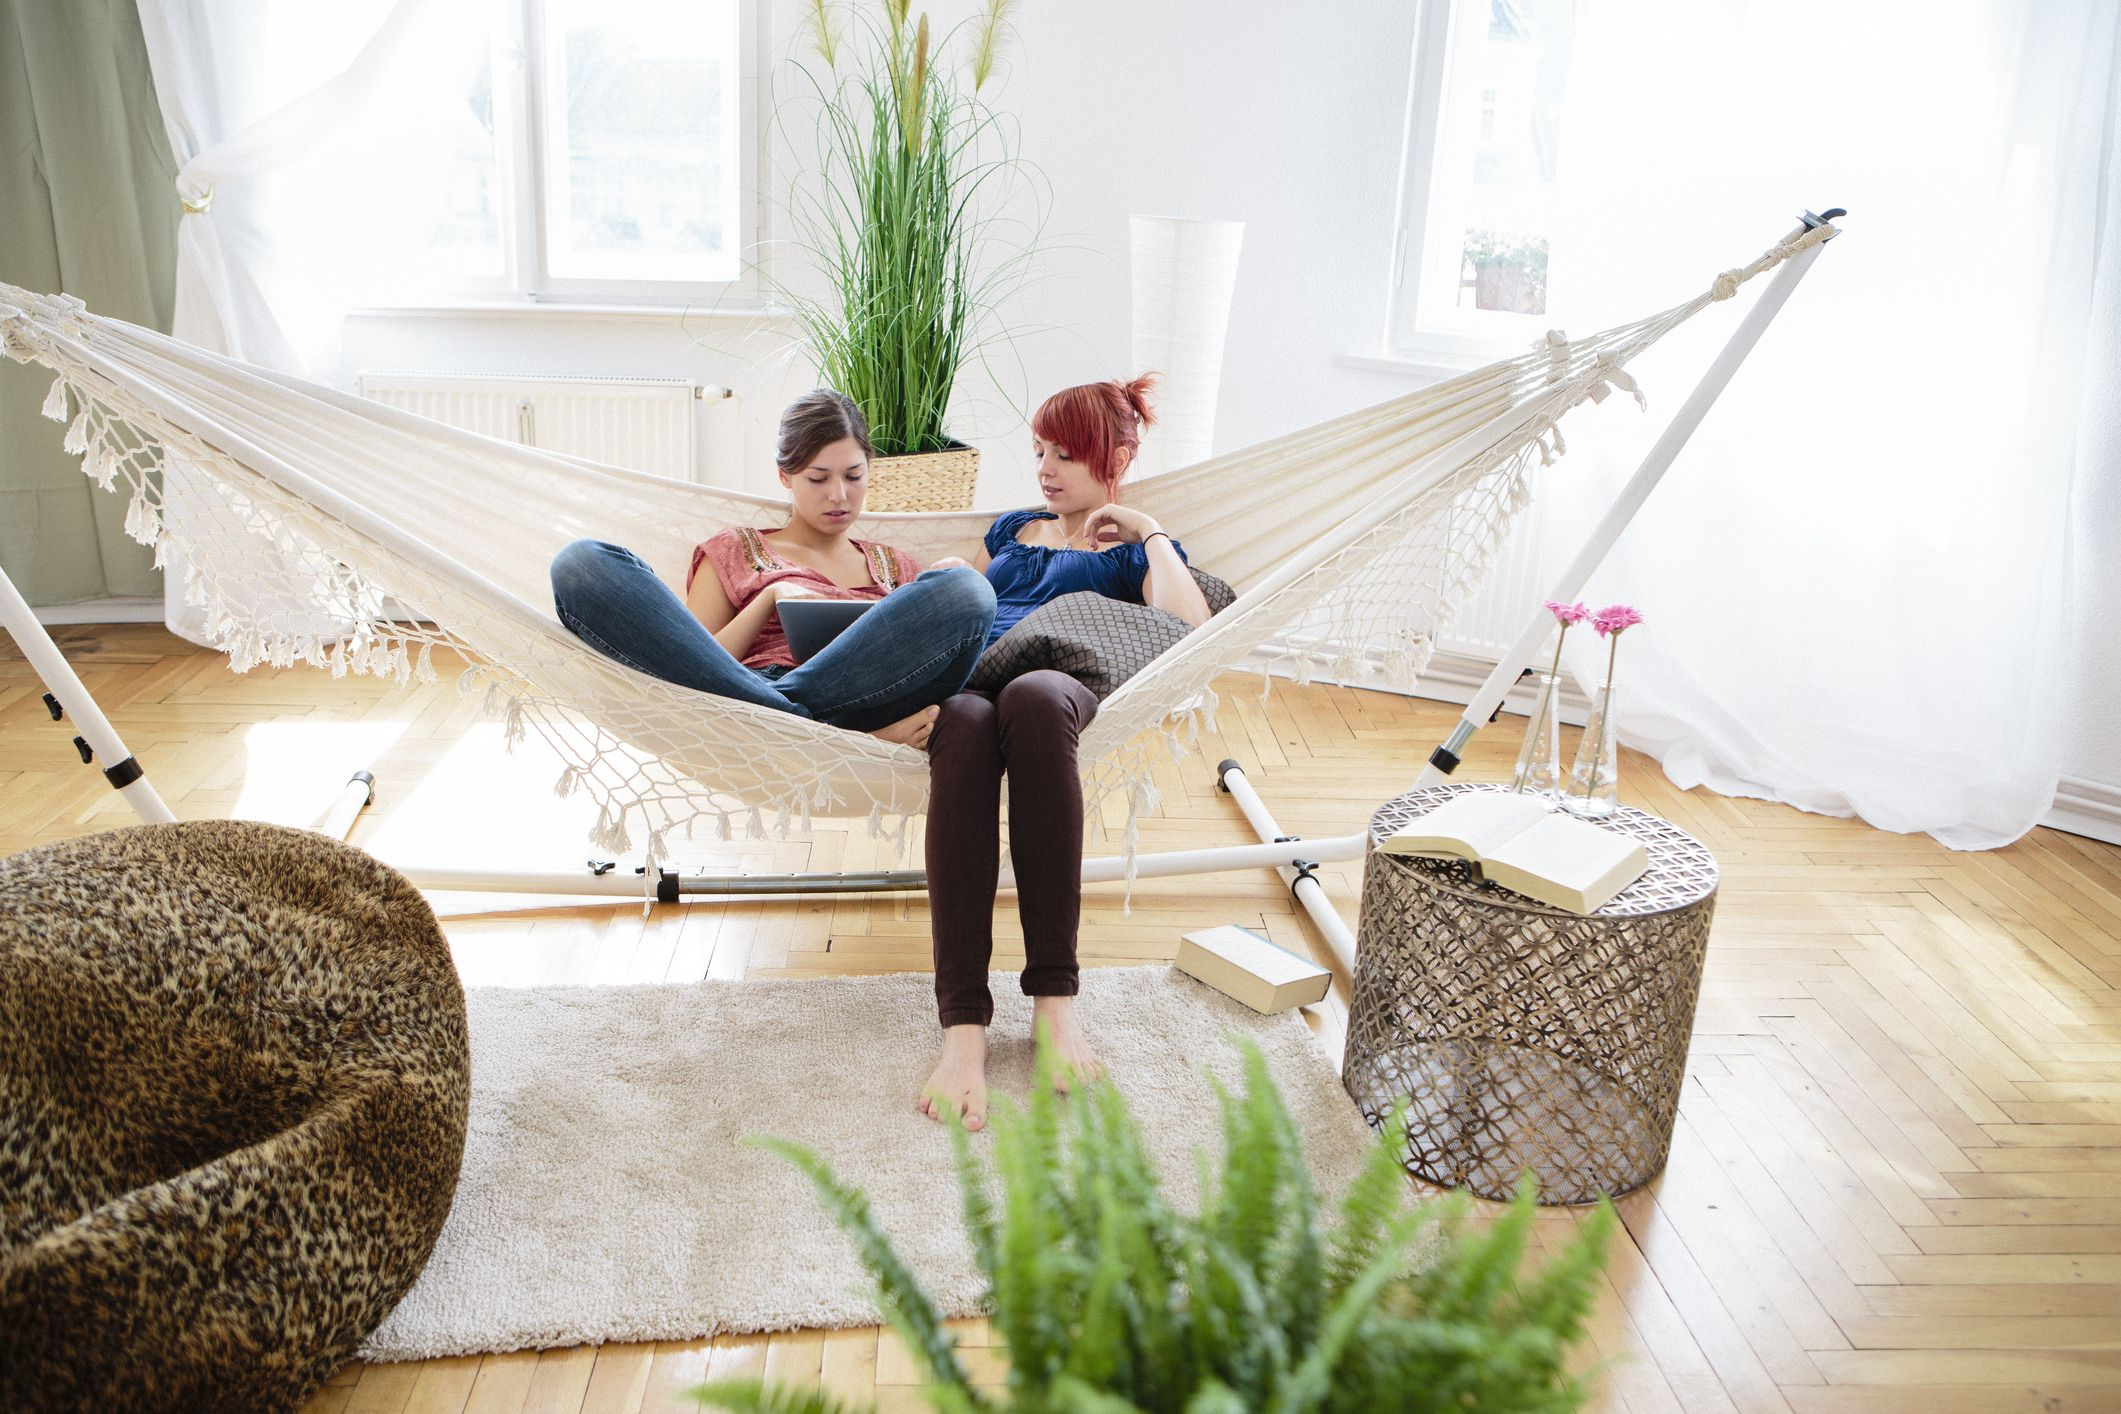 Rum Company Brugal 1888 Will Pay You to Swap Out Your Living Room Sofa For a Hammock